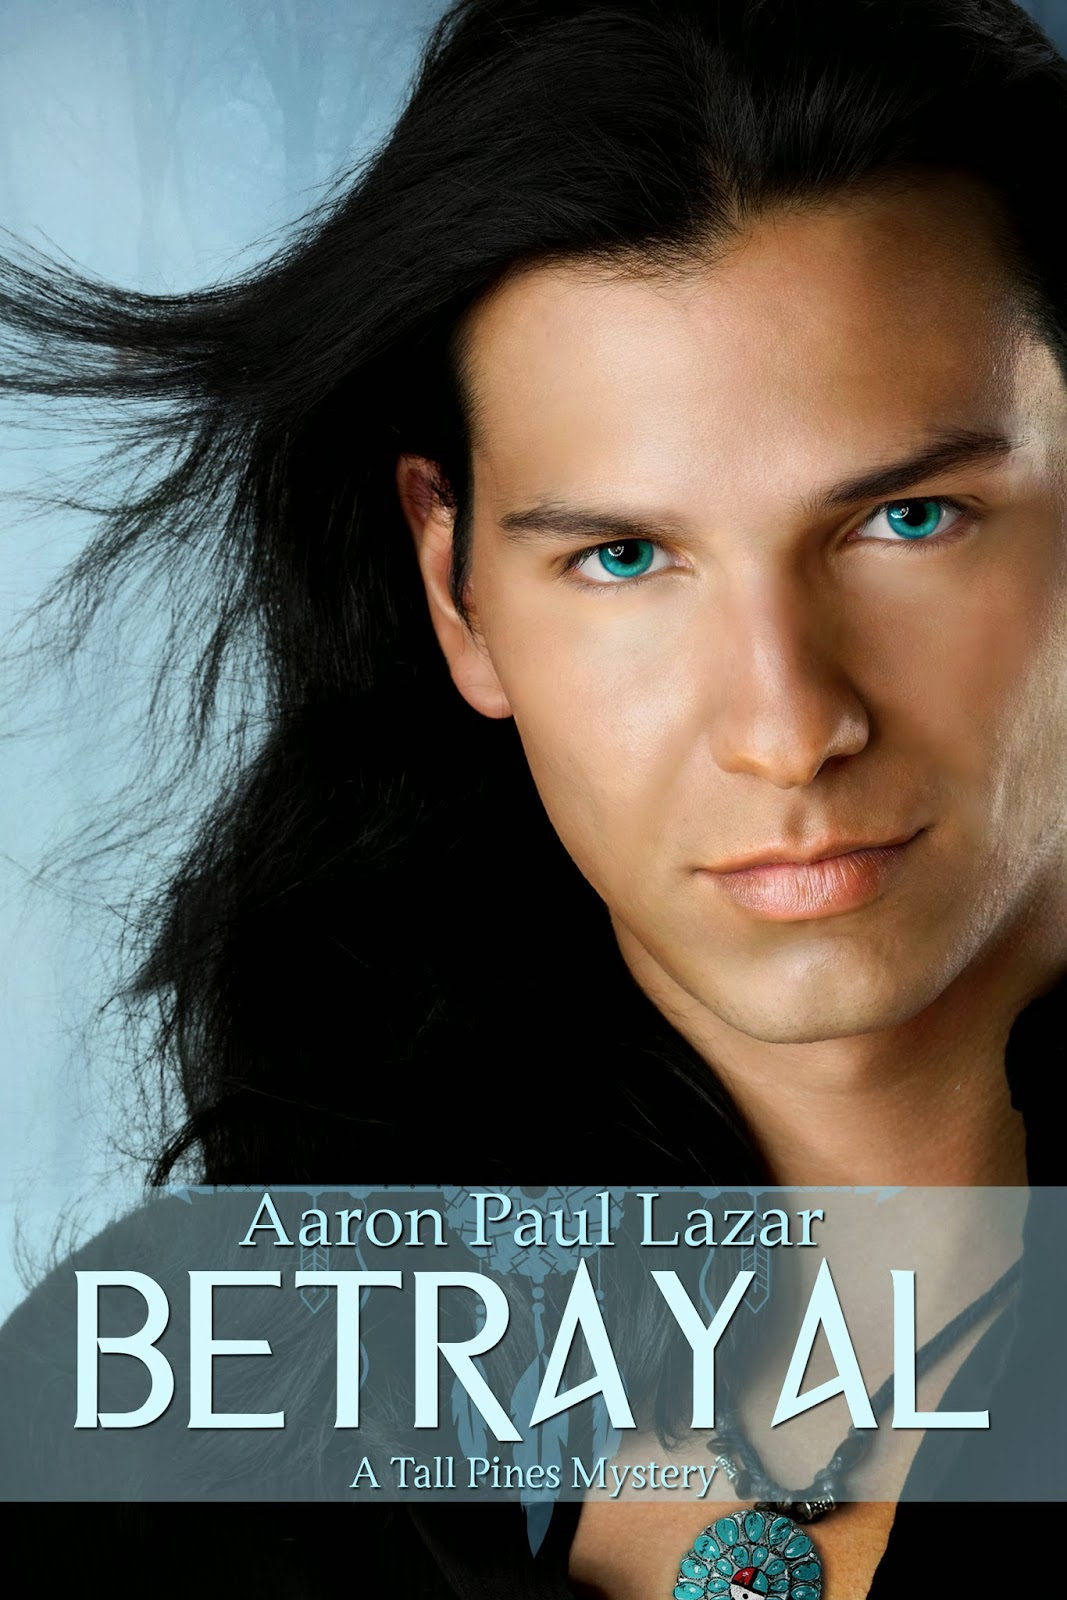 http://www.amazon.com/Betrayal-Tall-Pines-Mystery-Mysteries-ebook/dp/B00N2134W0/ref=pd_sim_kstore_1?ie=UTF8&refRID=0Y6S4QSBQ14YDT39KE39